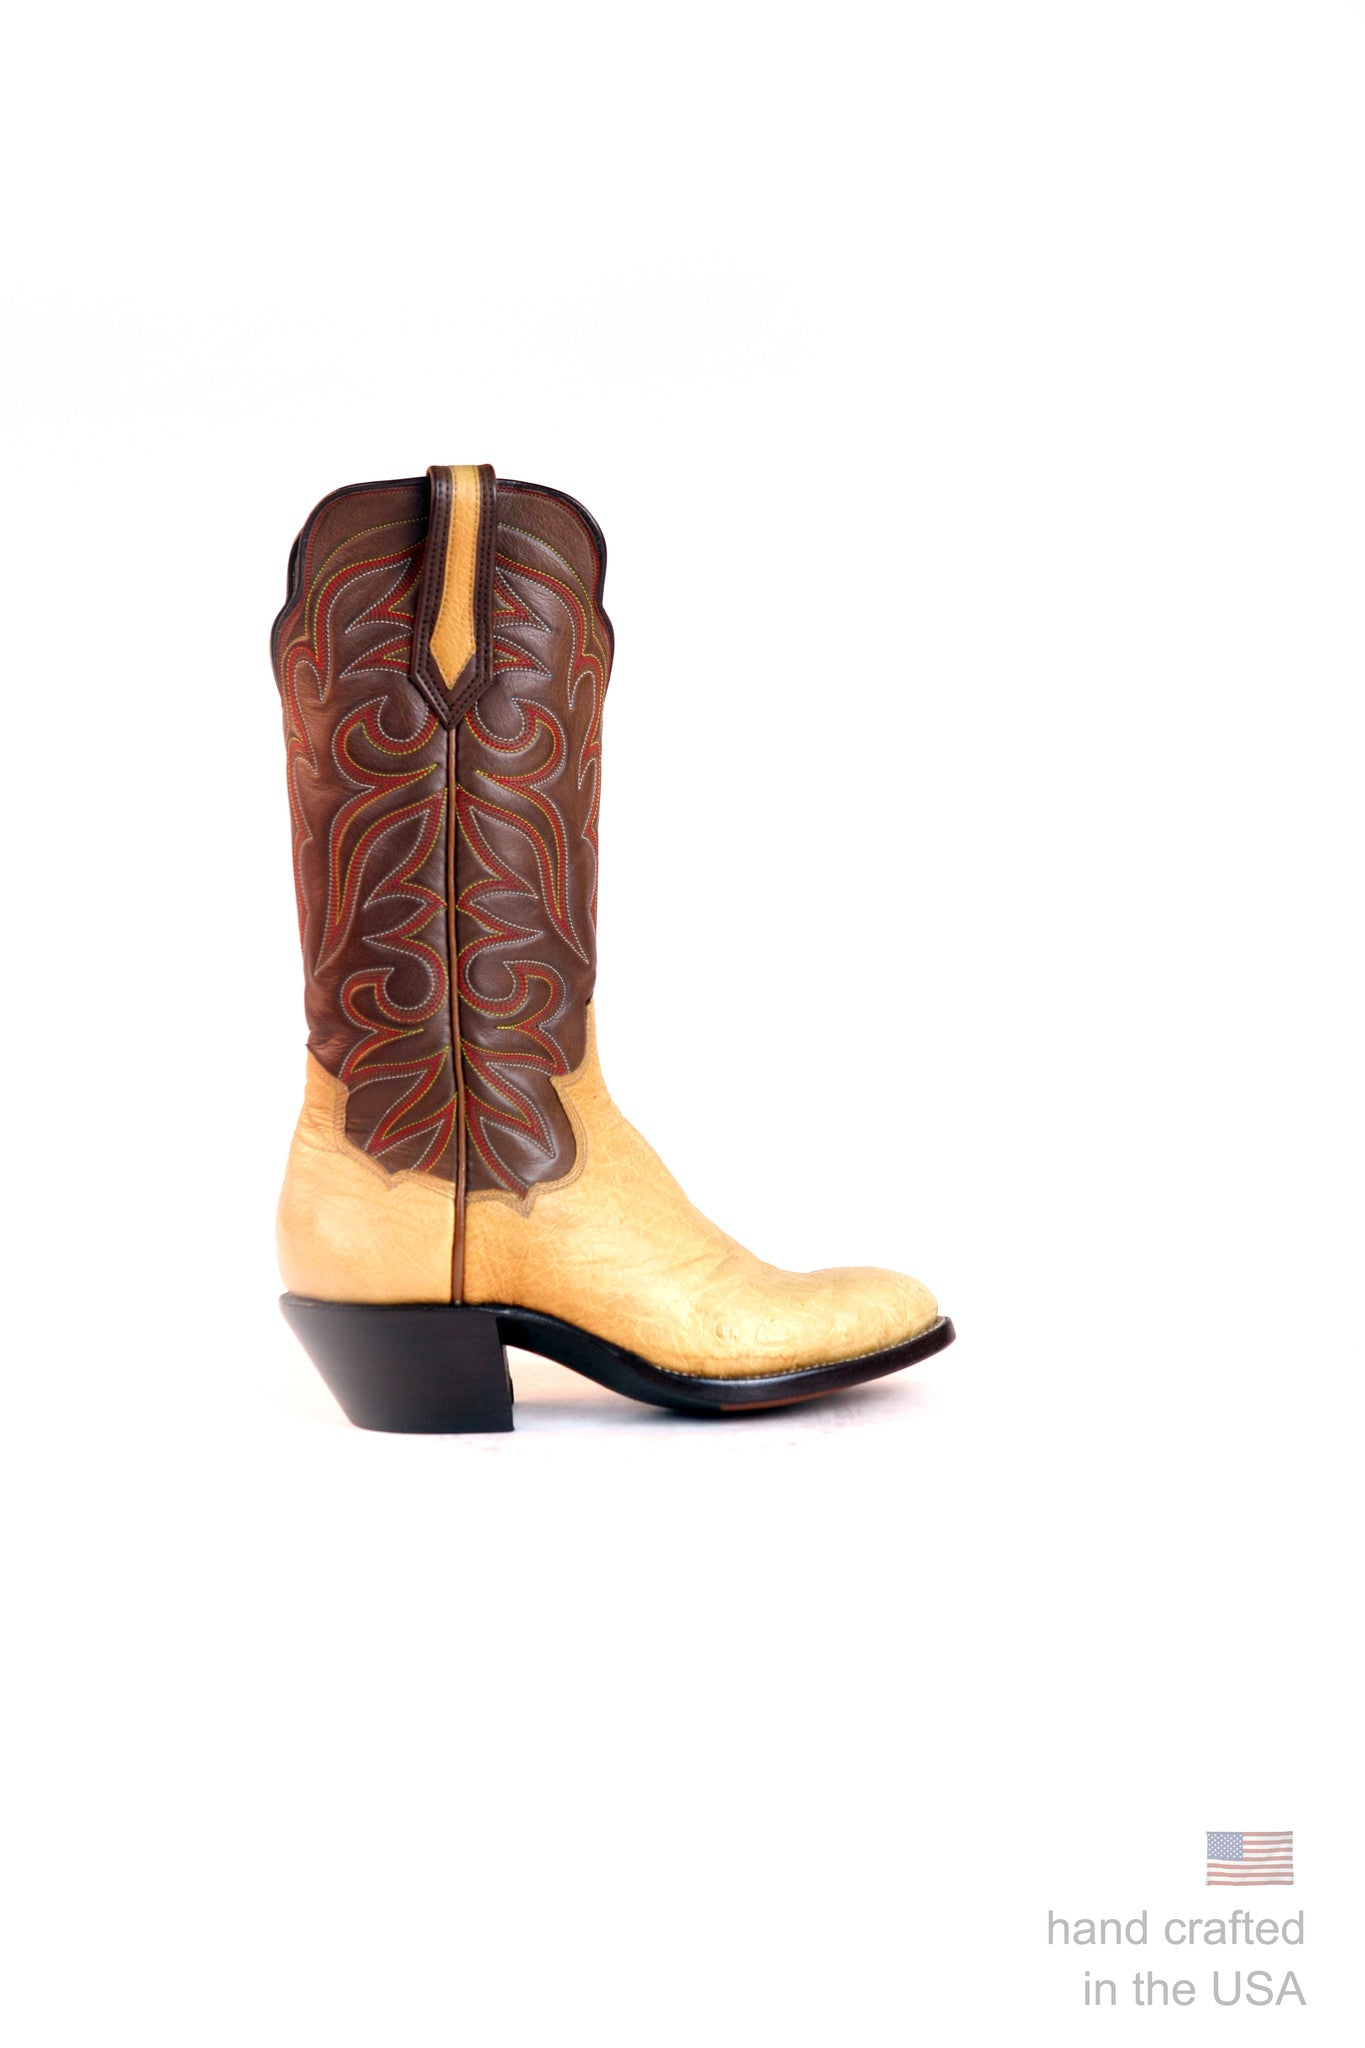 Singles: Boot 0070: Size 5.5 A